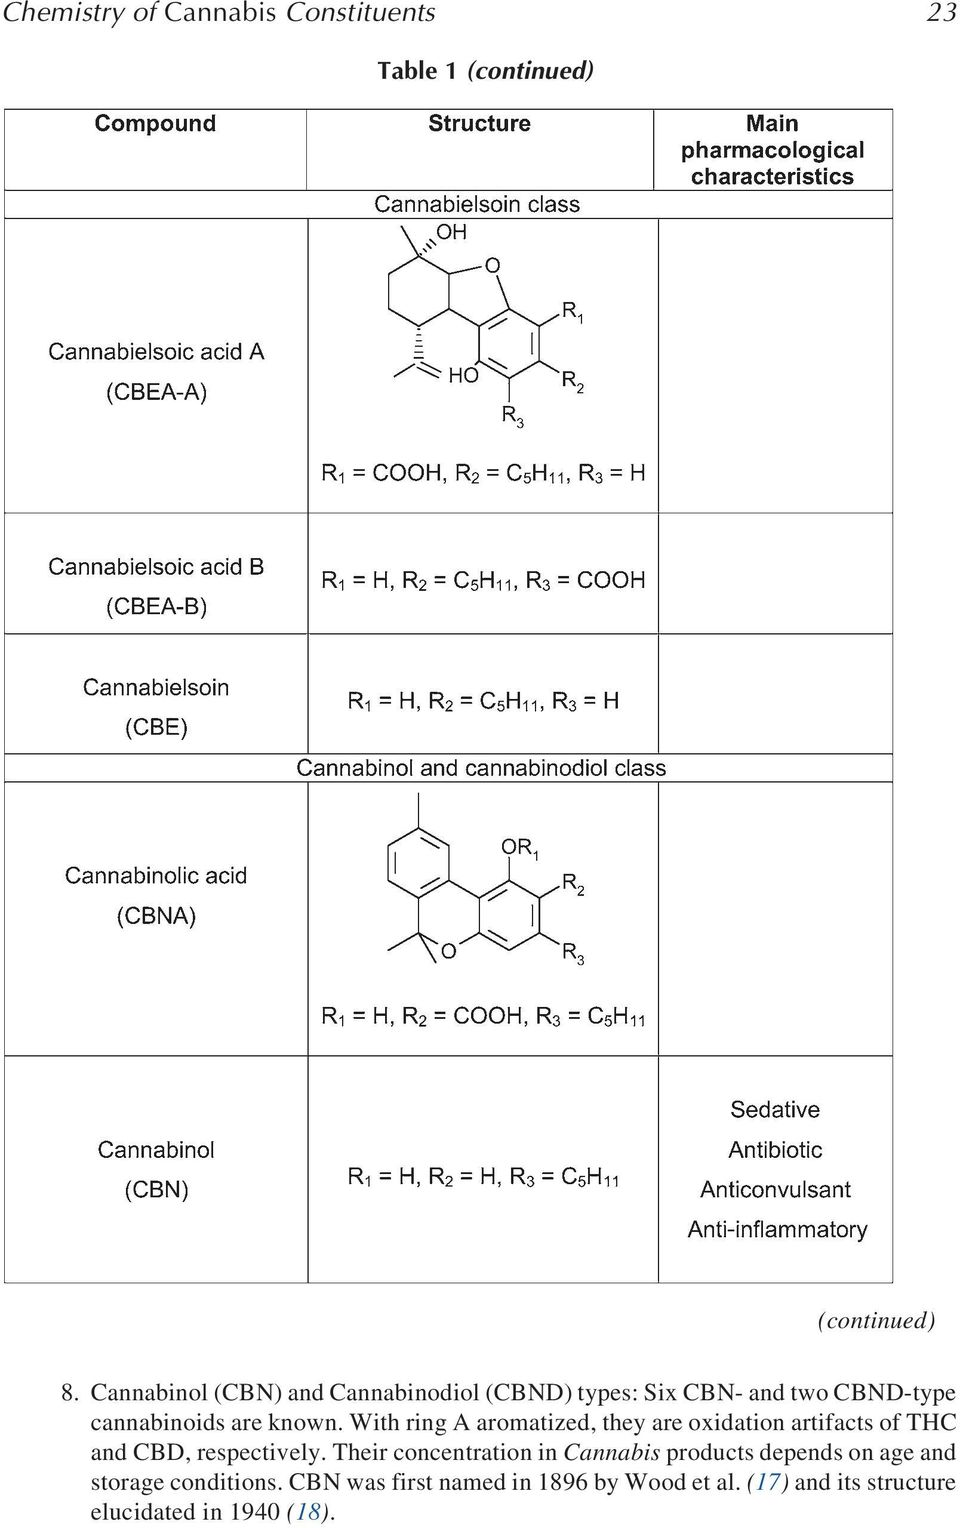 chemistry and analysis of phytocannabinoids and other cannabis